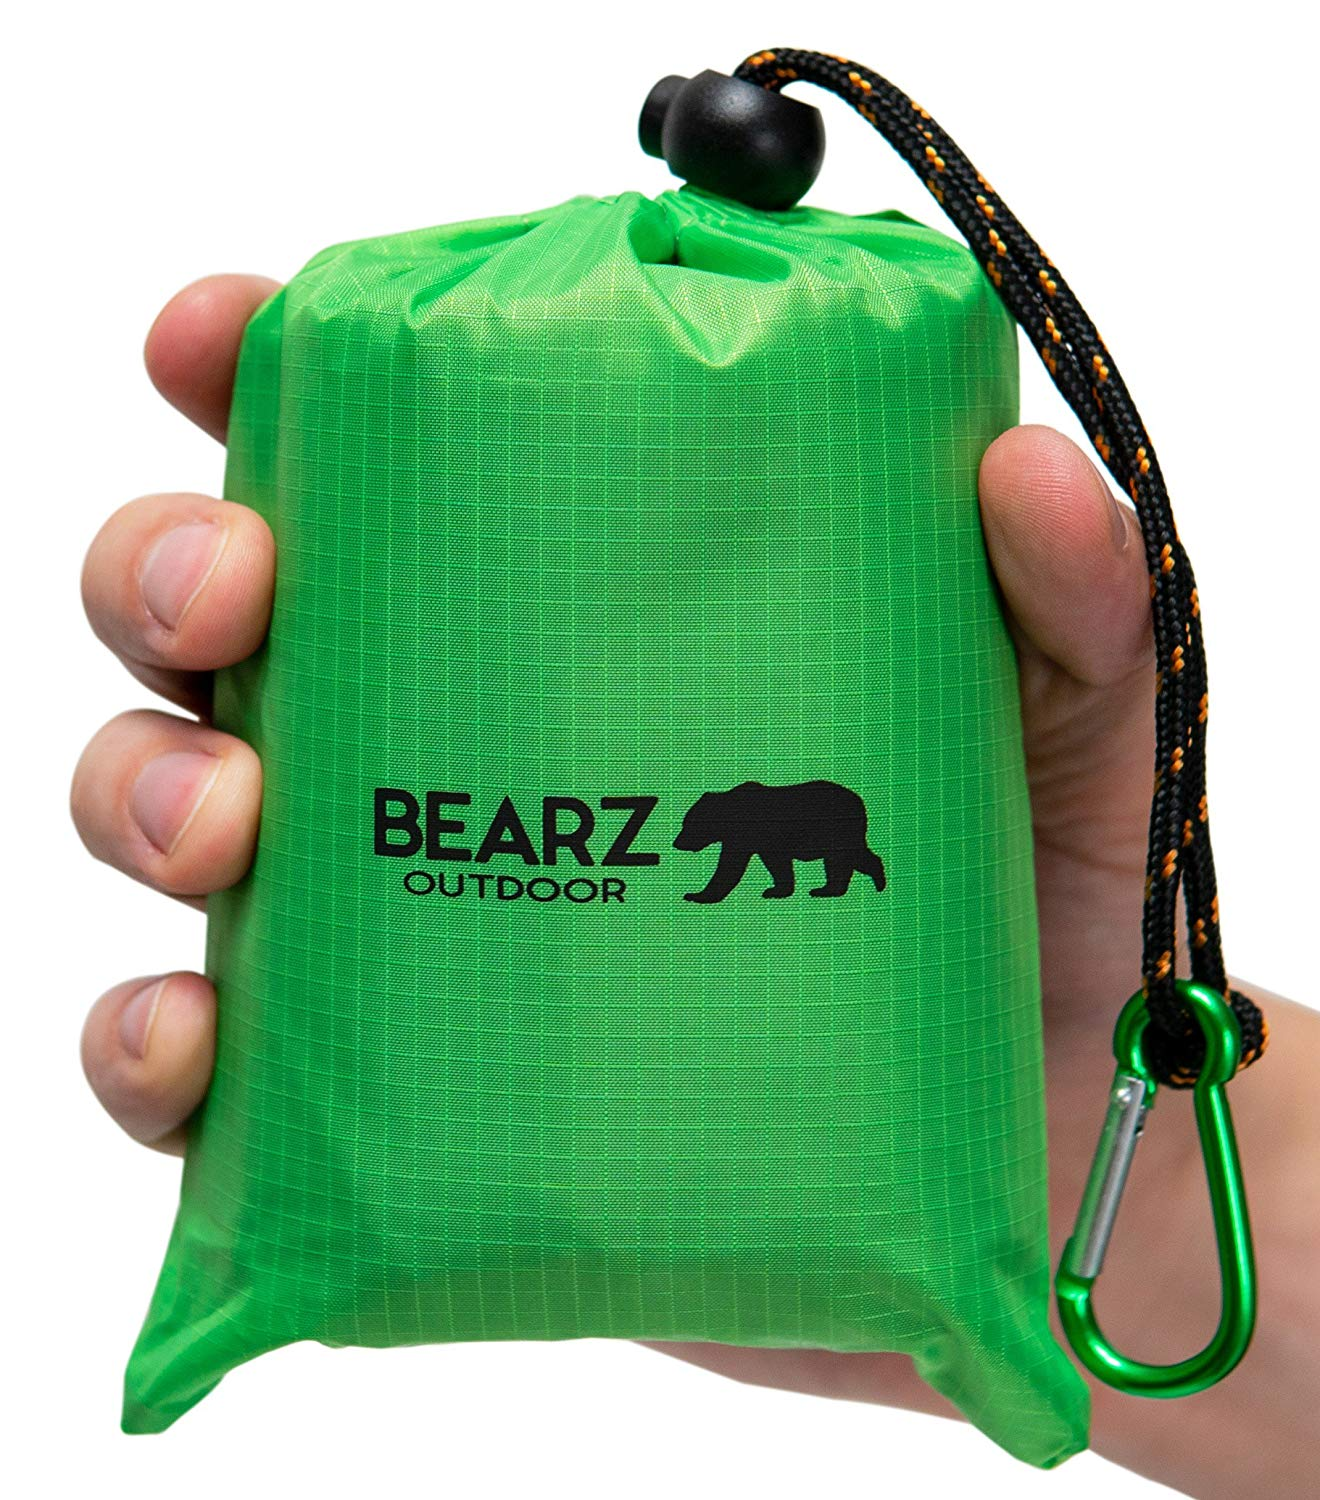 10. BEARZ Pocket Blanket